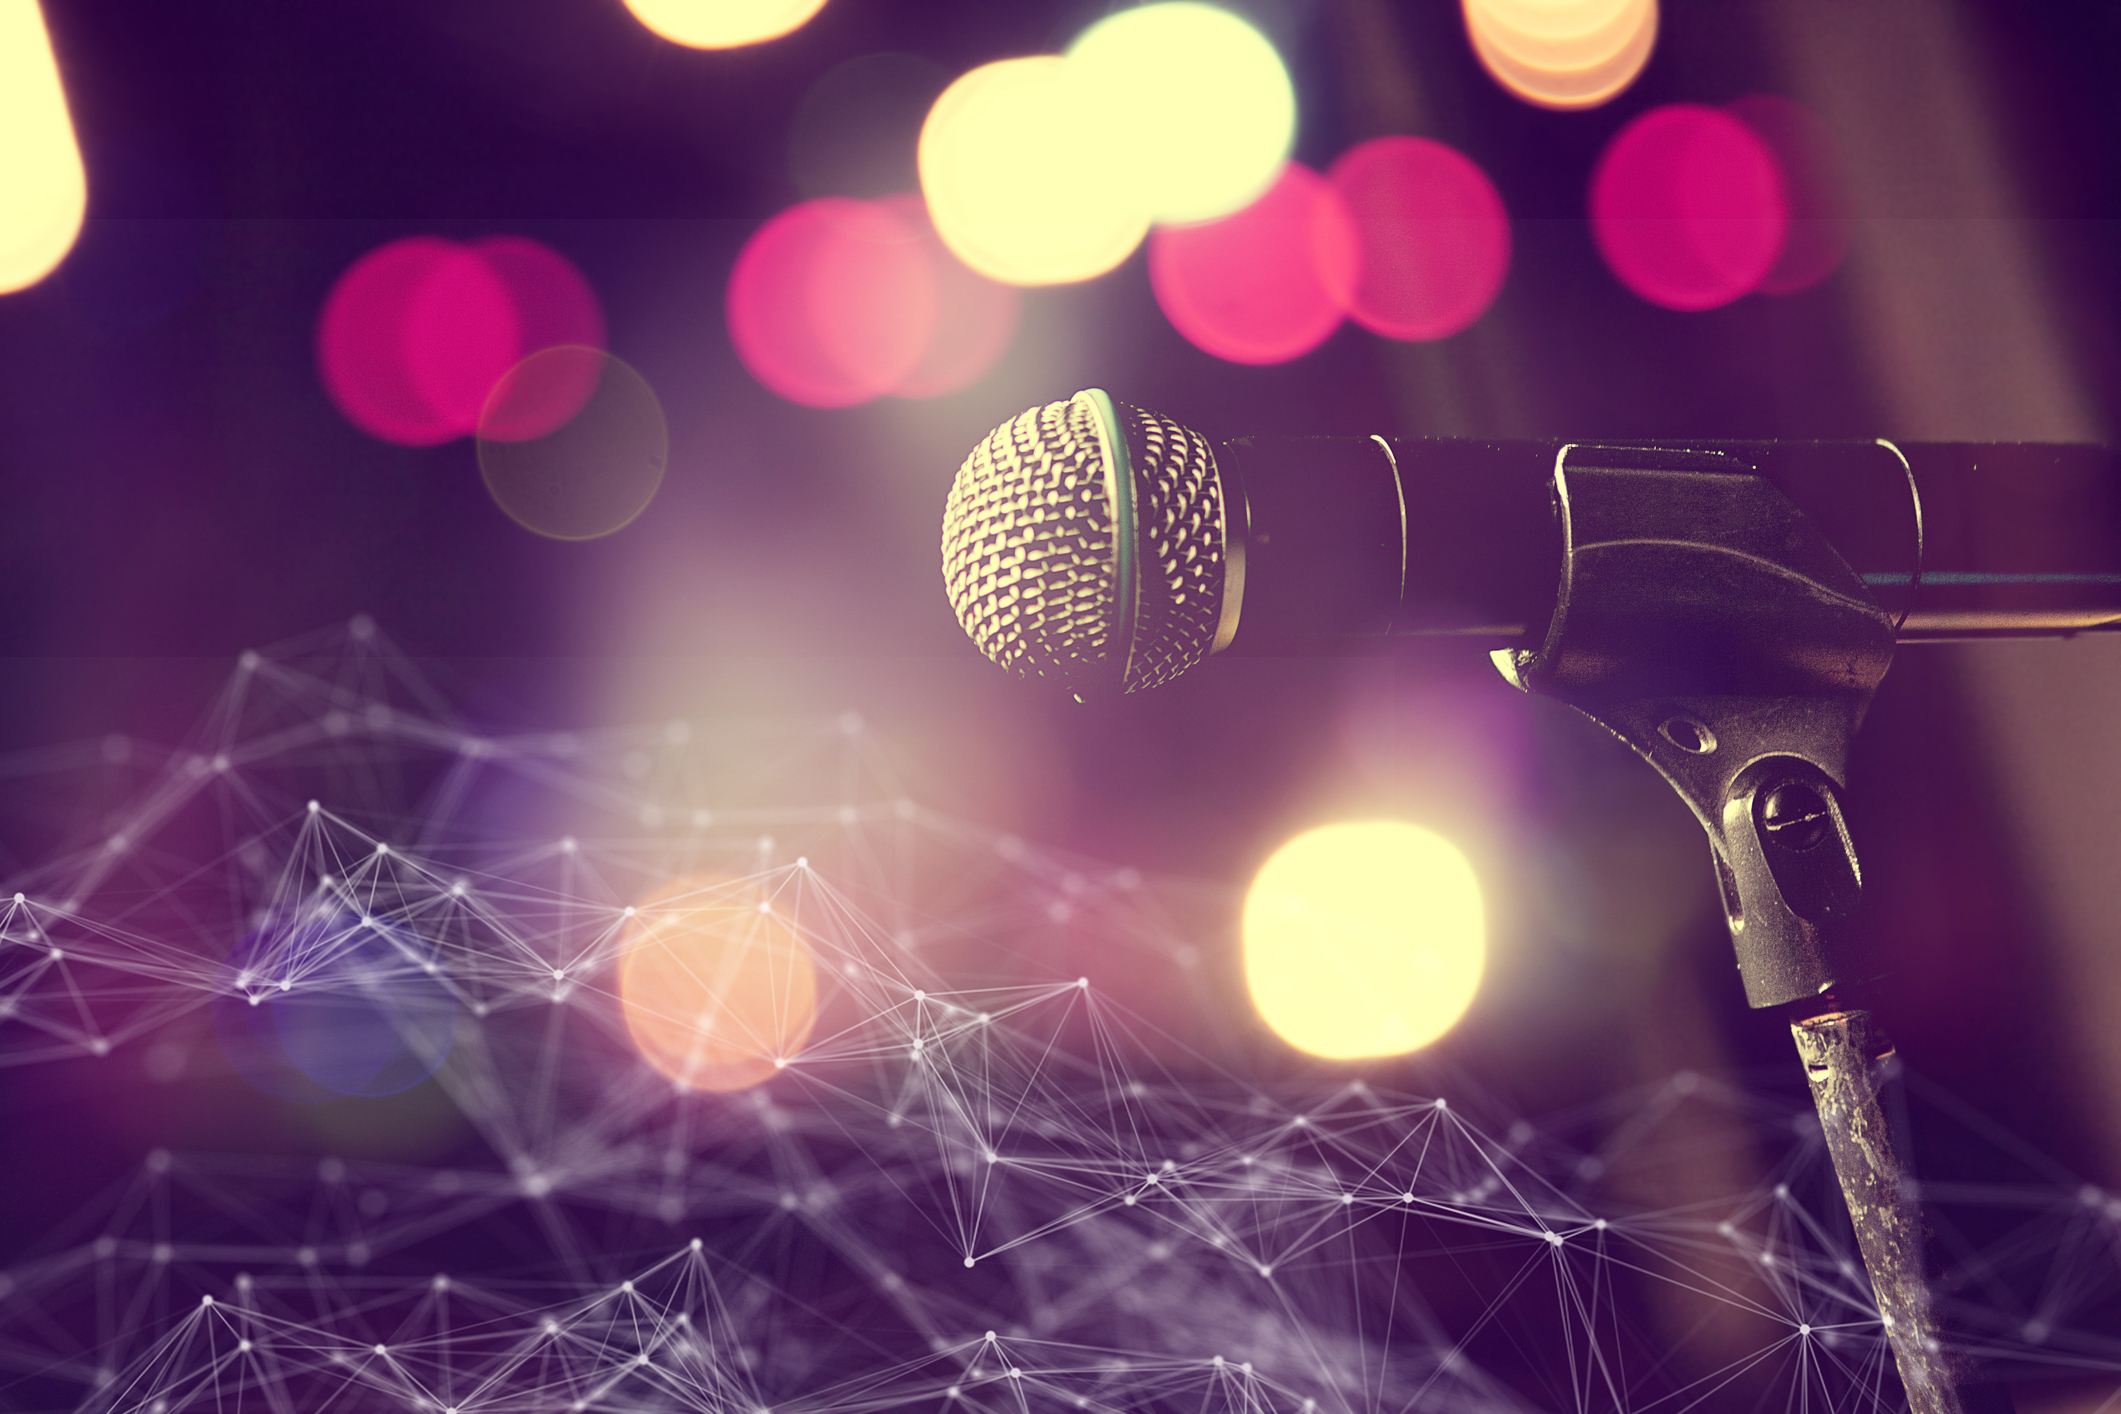 Big data and jazz music - microphone and stage lights